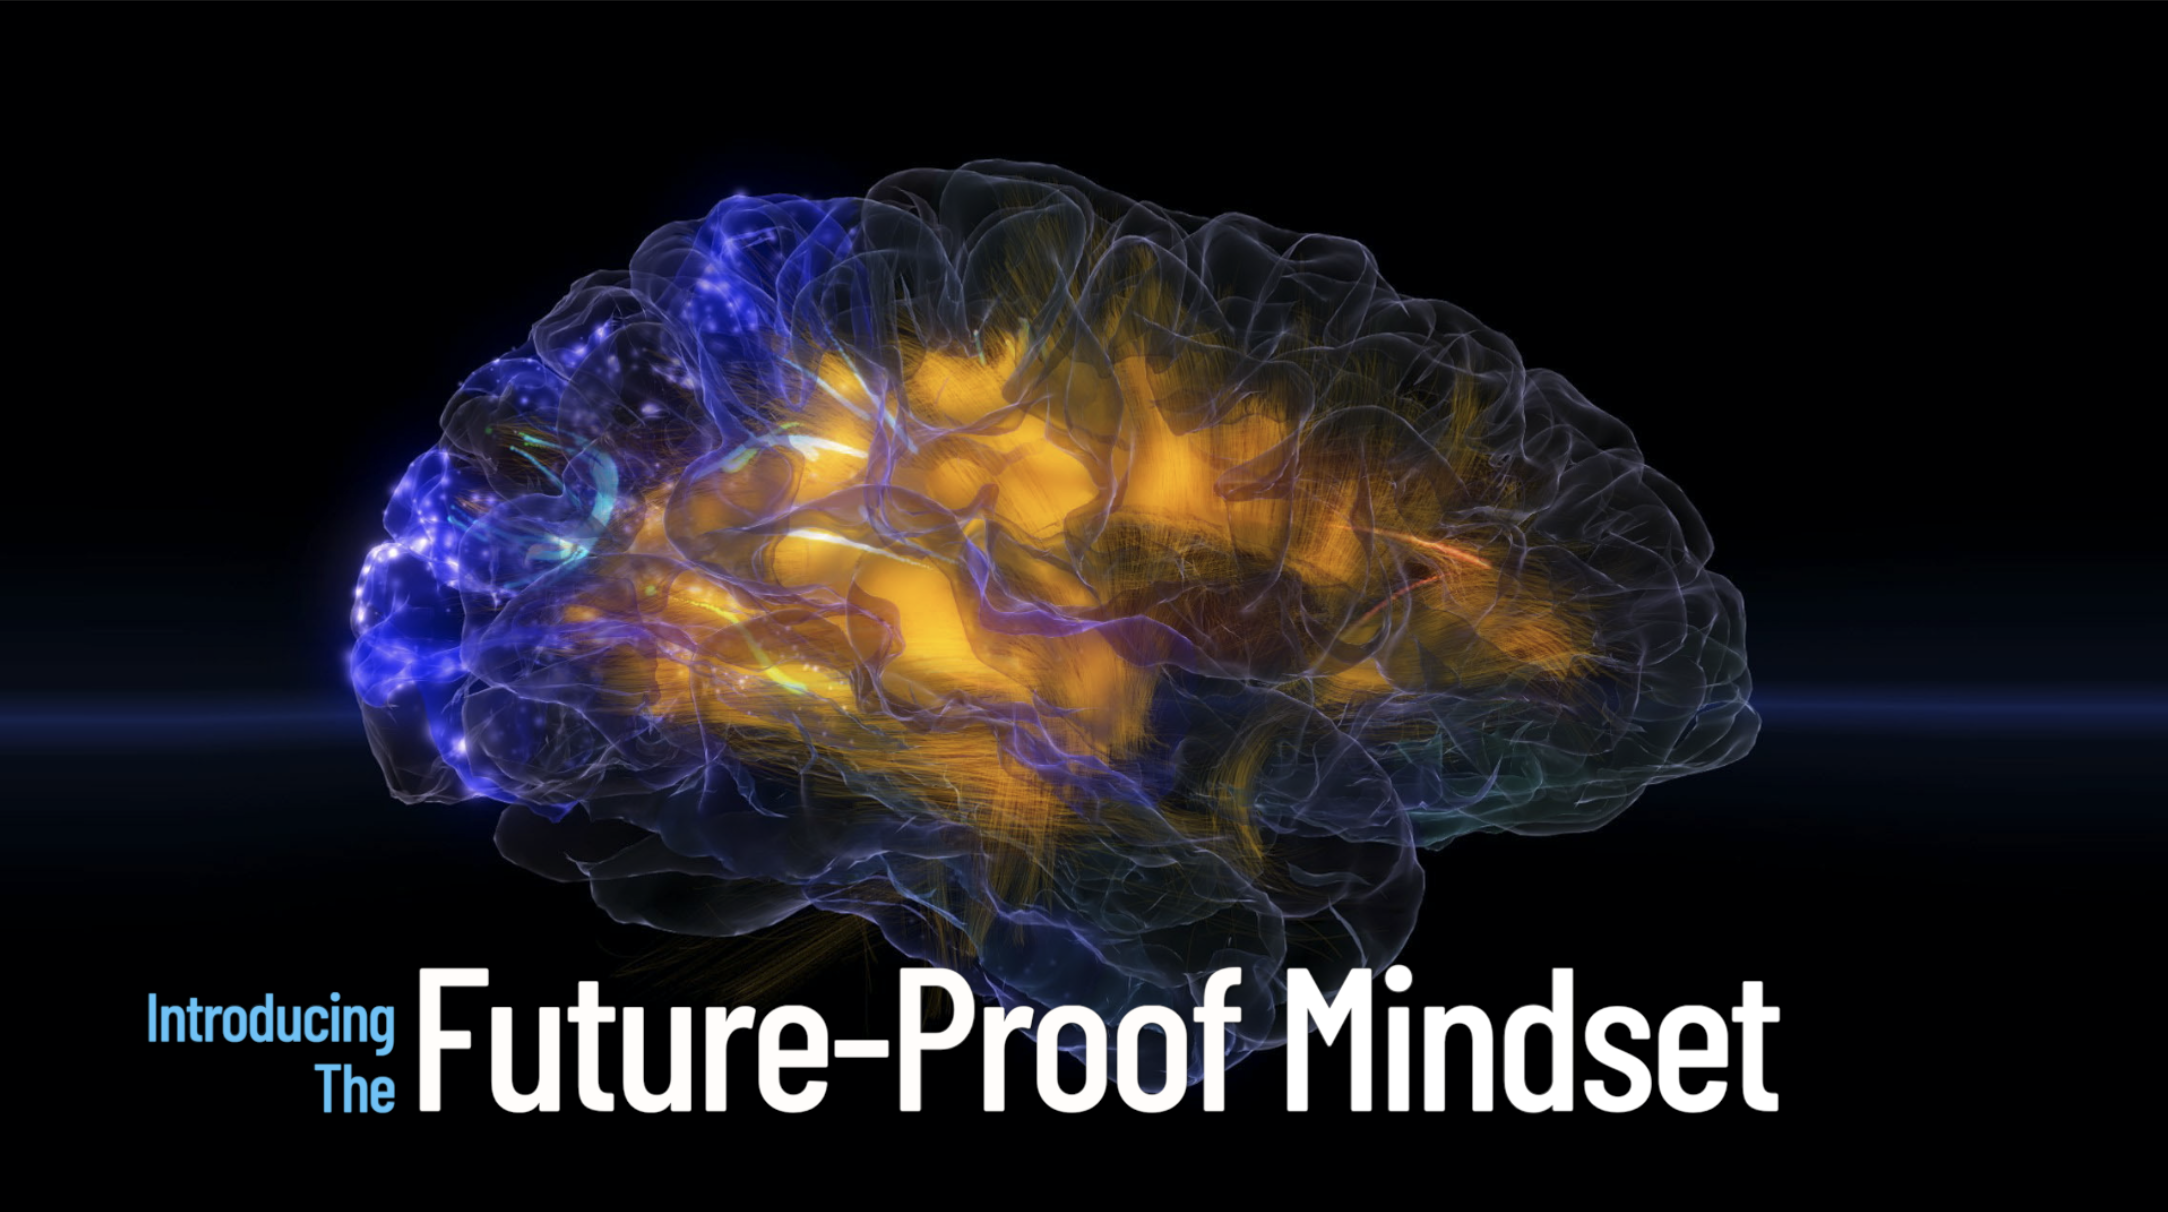 Future-Proof Mindset Introductie